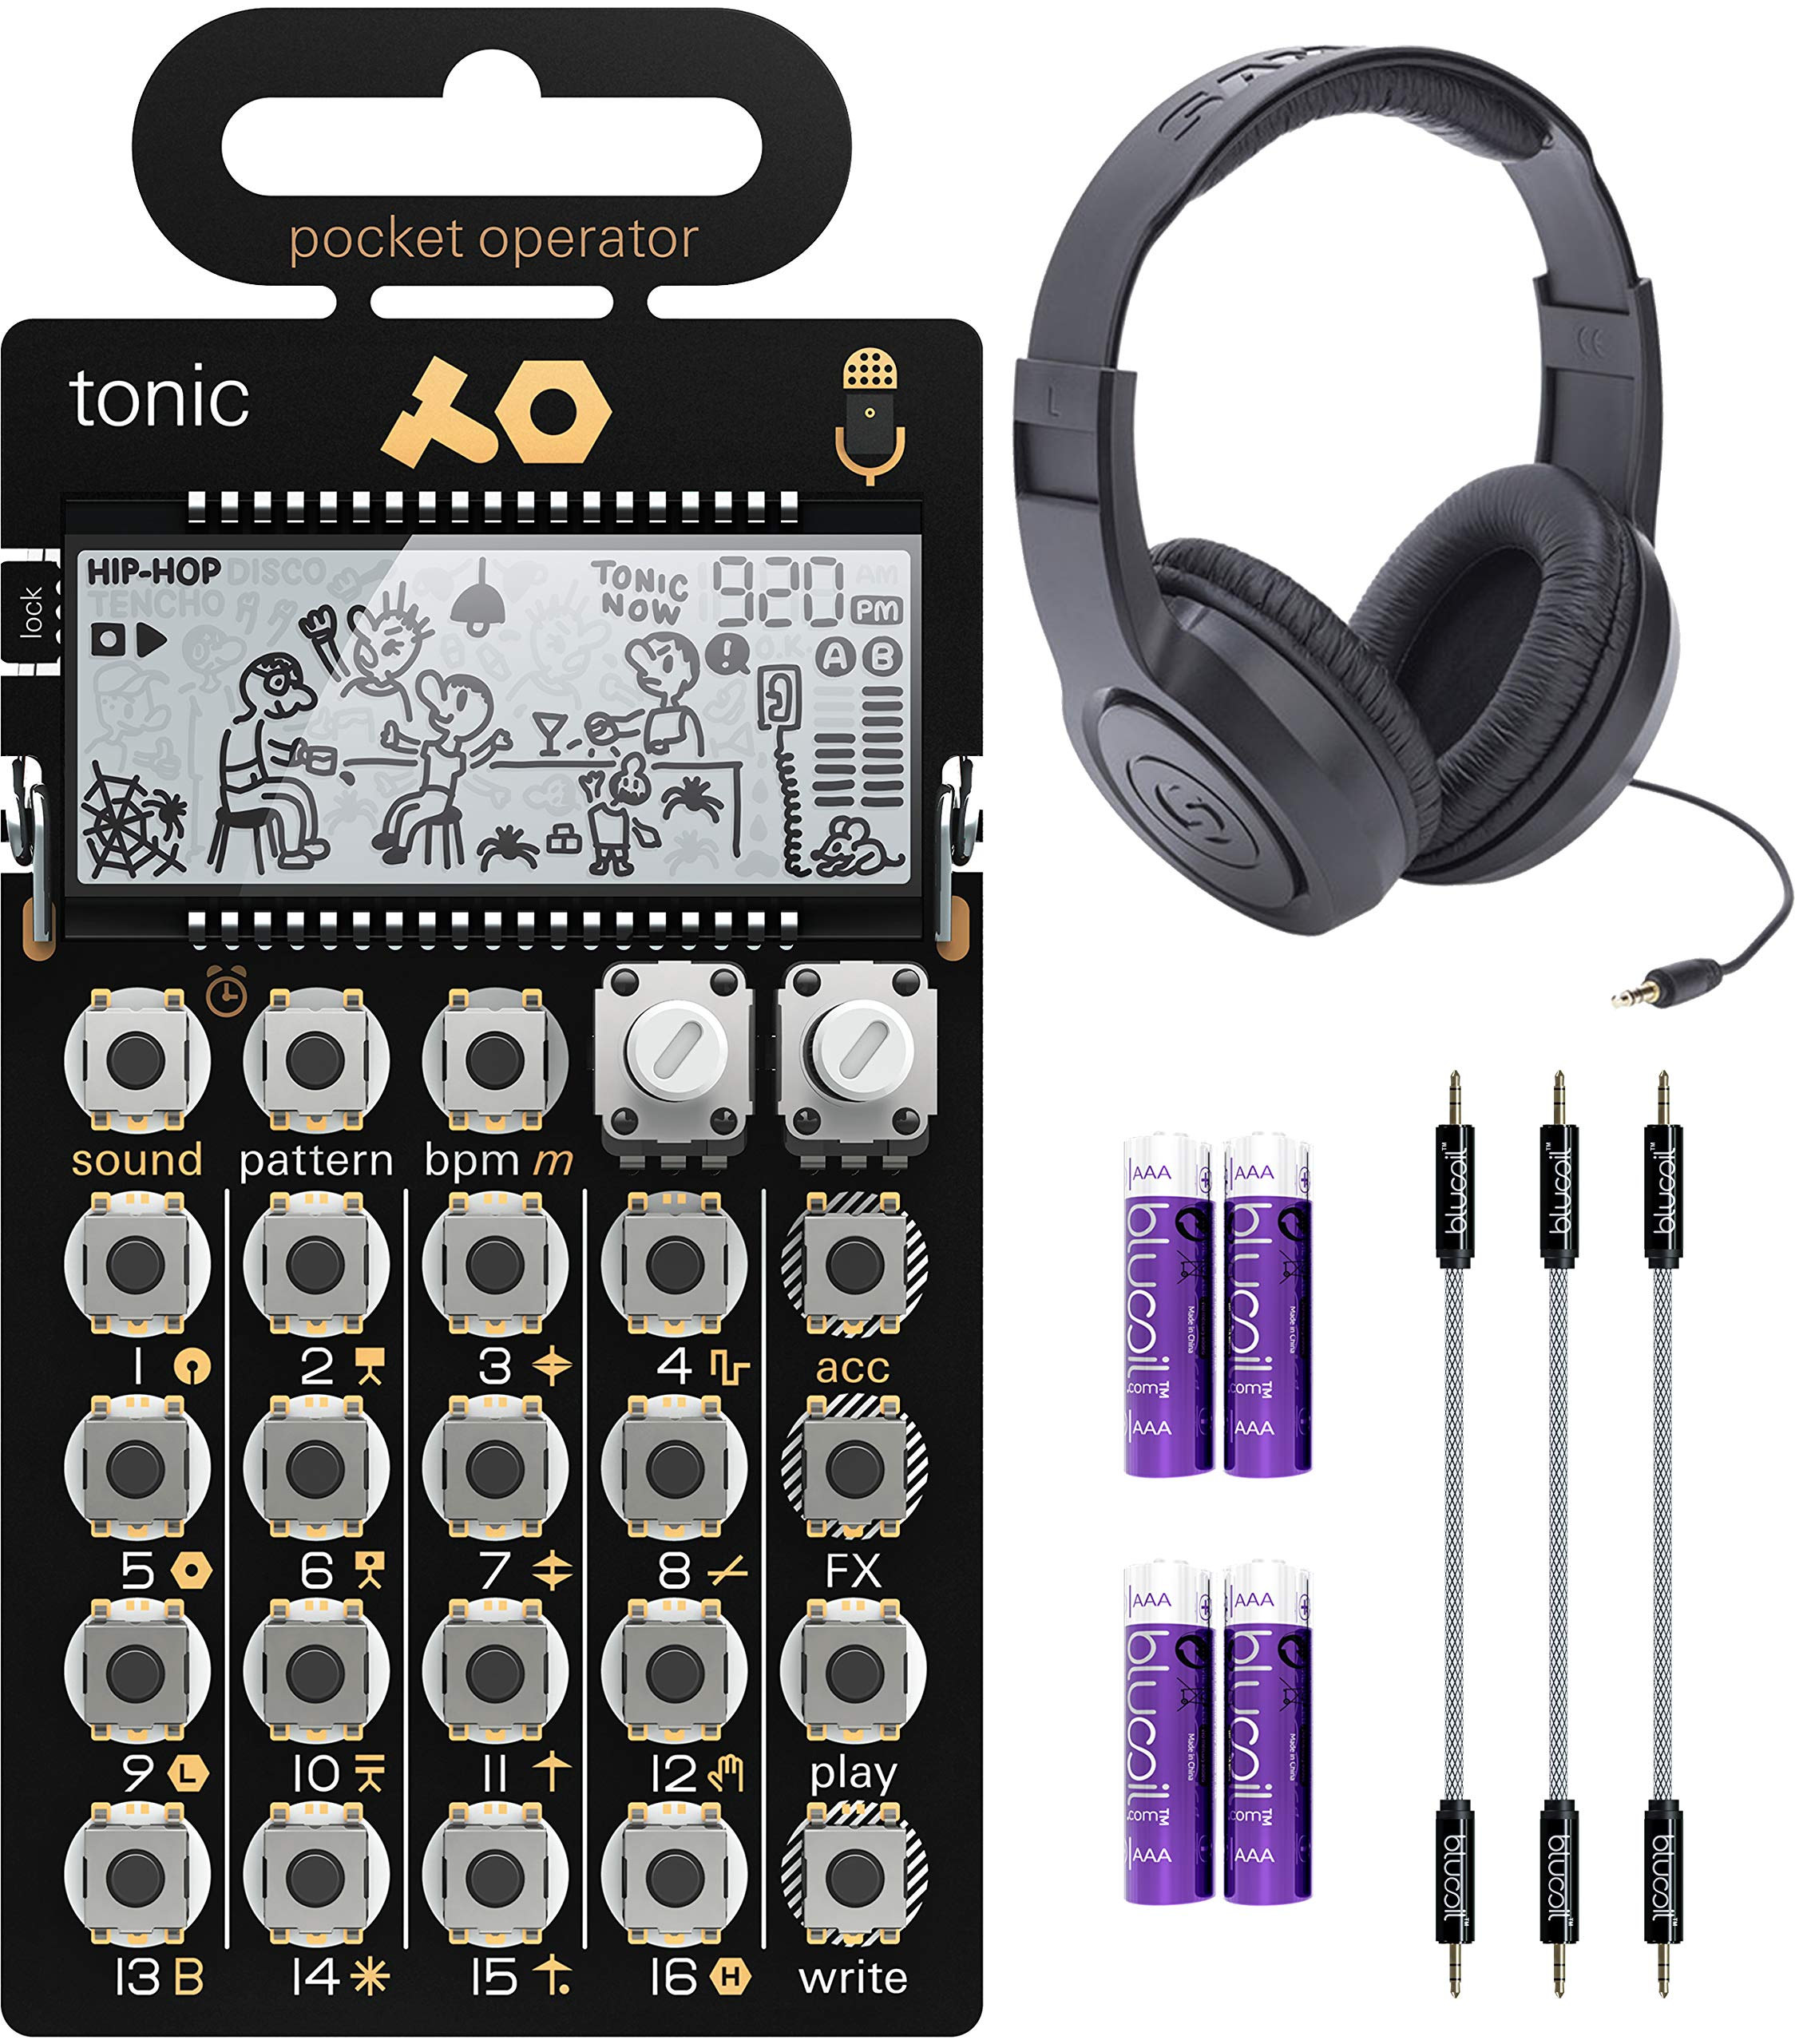 Teenage Engineering PO-32 Pocket Operator Tonic Drum Synth Bundle with Samson SR350 Over-Ear Closed-Back Headphones, Blucoil 3-Pack of 7'' Audio Aux Cables, and 4 AAA Batteries by blucoil